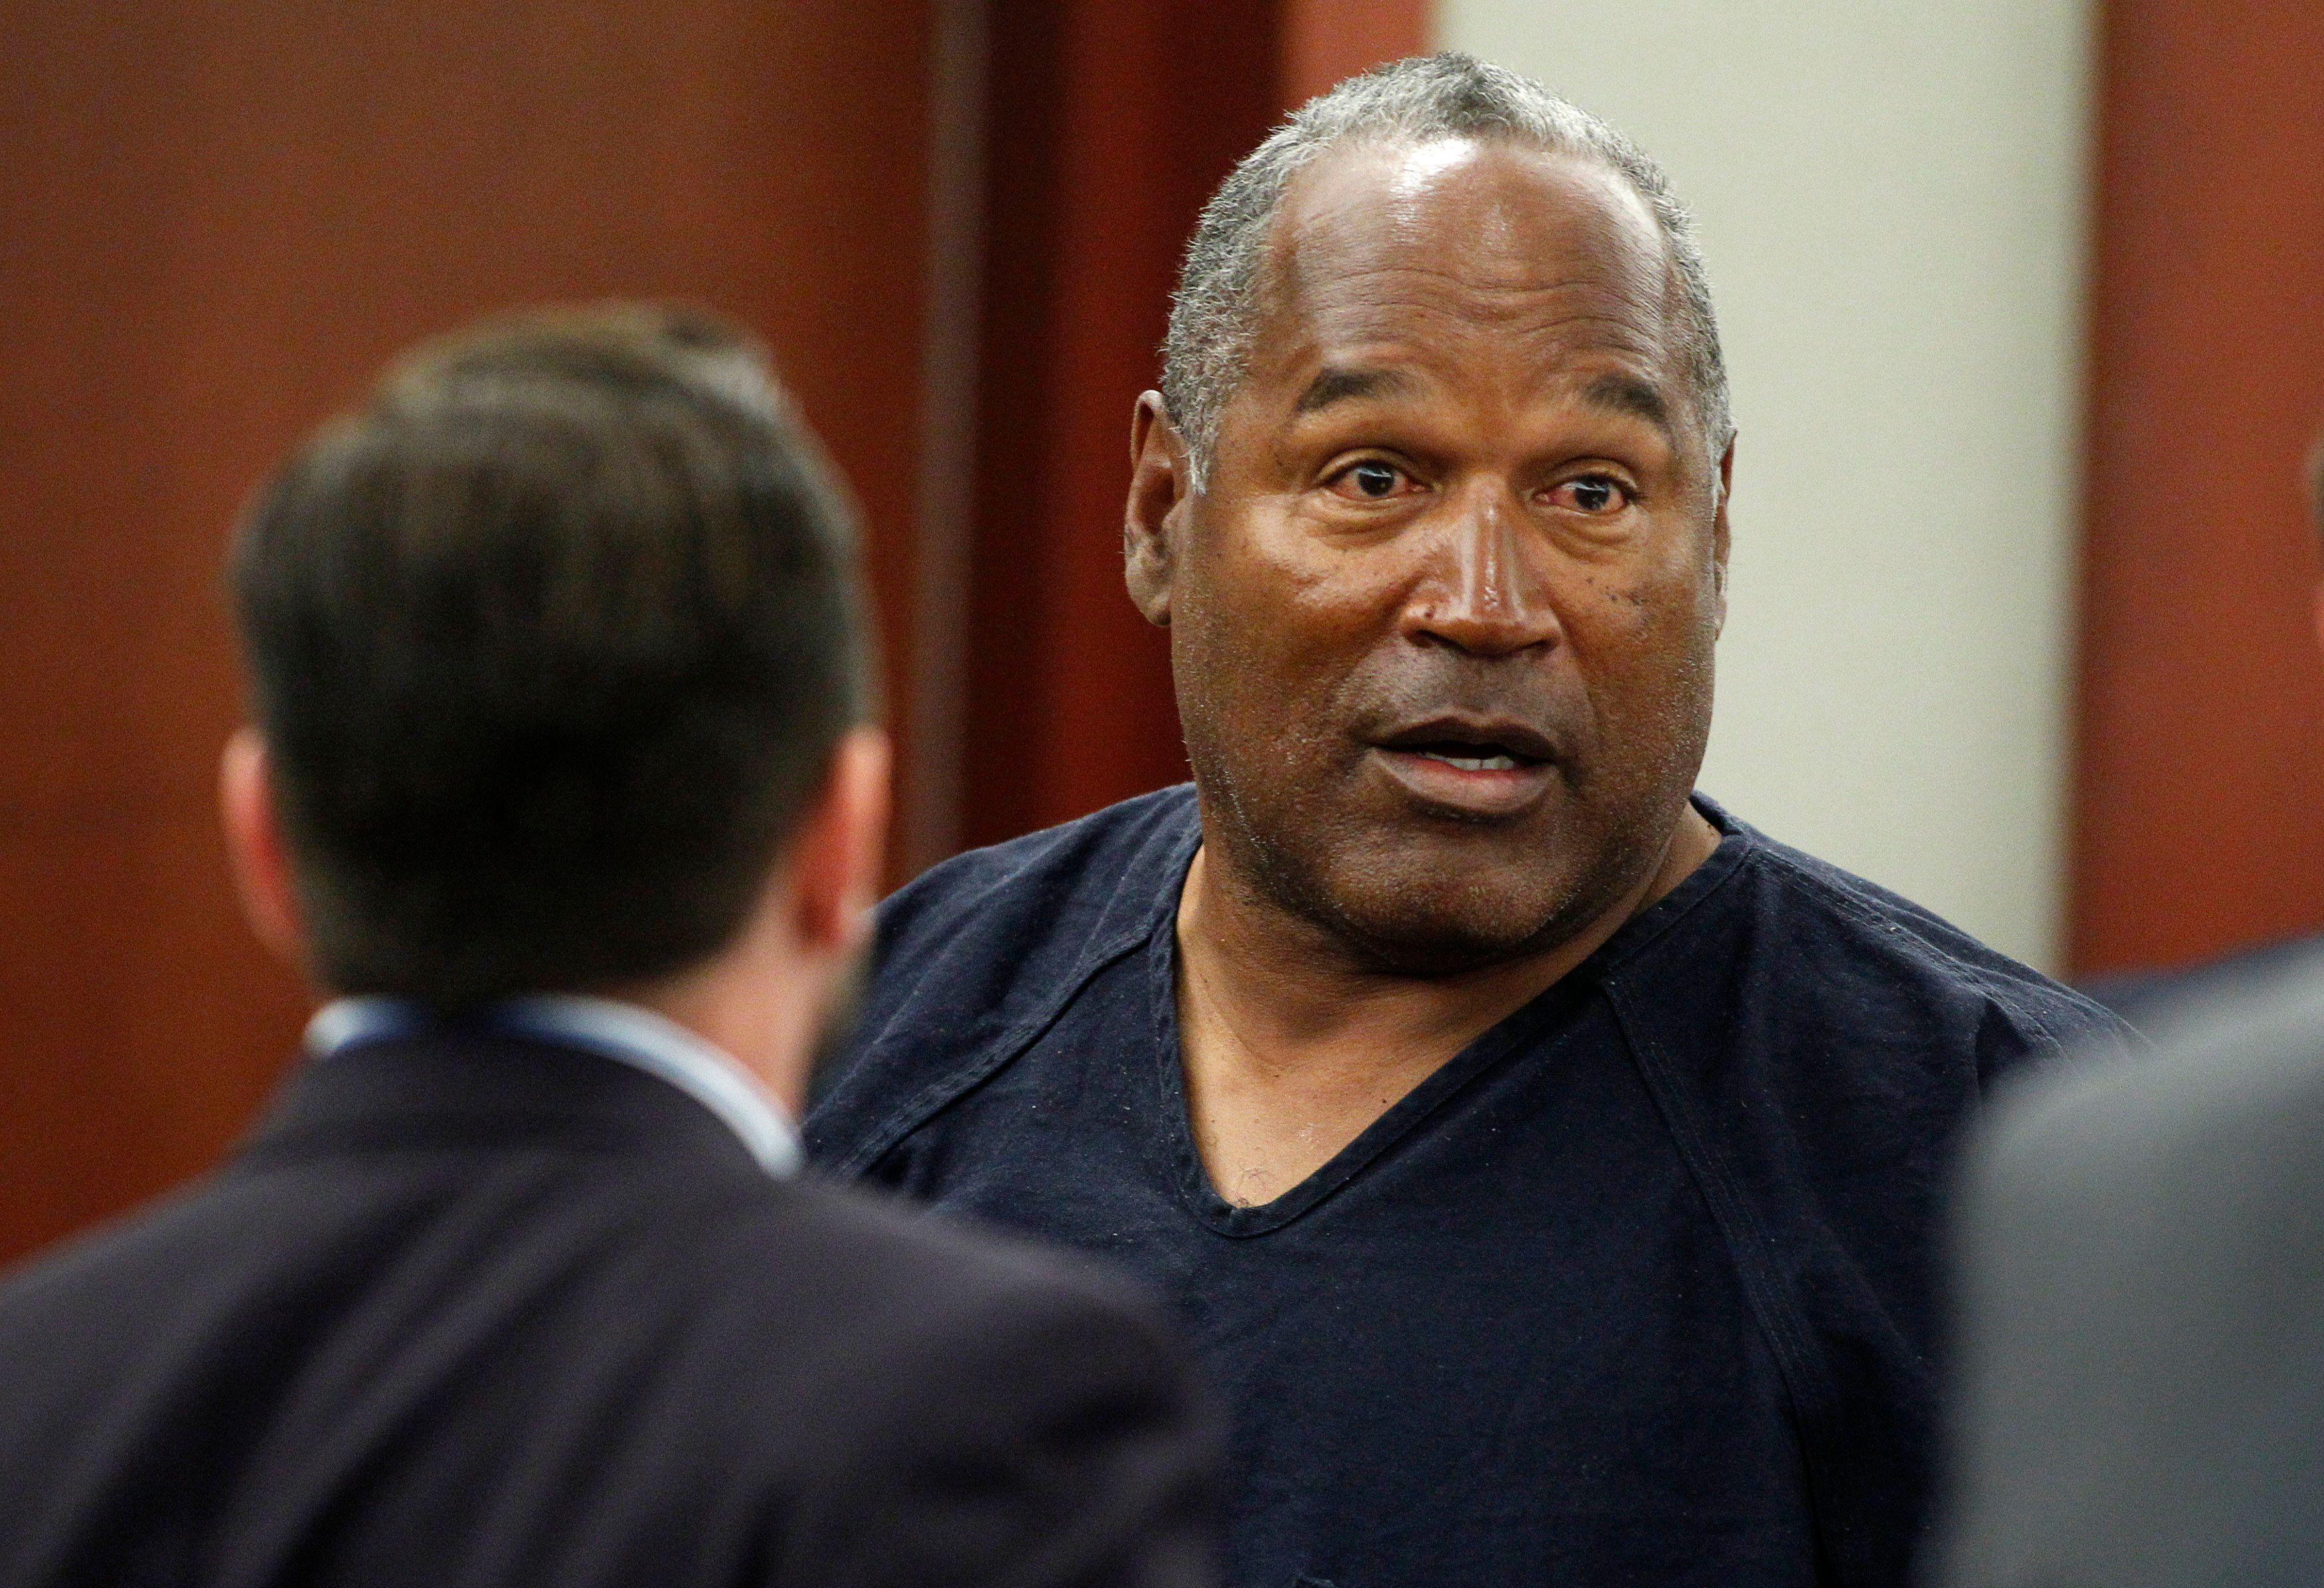 VEGAS, NV - MAY 17:  O.J. Simpson (R) stands at the end of an evidentiary hearing in Clark County District Court on May 17, 2013 in Las Vegas, Nevada. Simpson, who is currently serving a nine-to-33-year sentence in state prison as a result of his October 2008 conviction for armed robbery and kidnapping charges, is using a writ of habeas corpus to seek a new trial, claiming he had such bad representation that his conviction should be reversed.  (Photo by Steve Marcus-Pool/Getty Images)